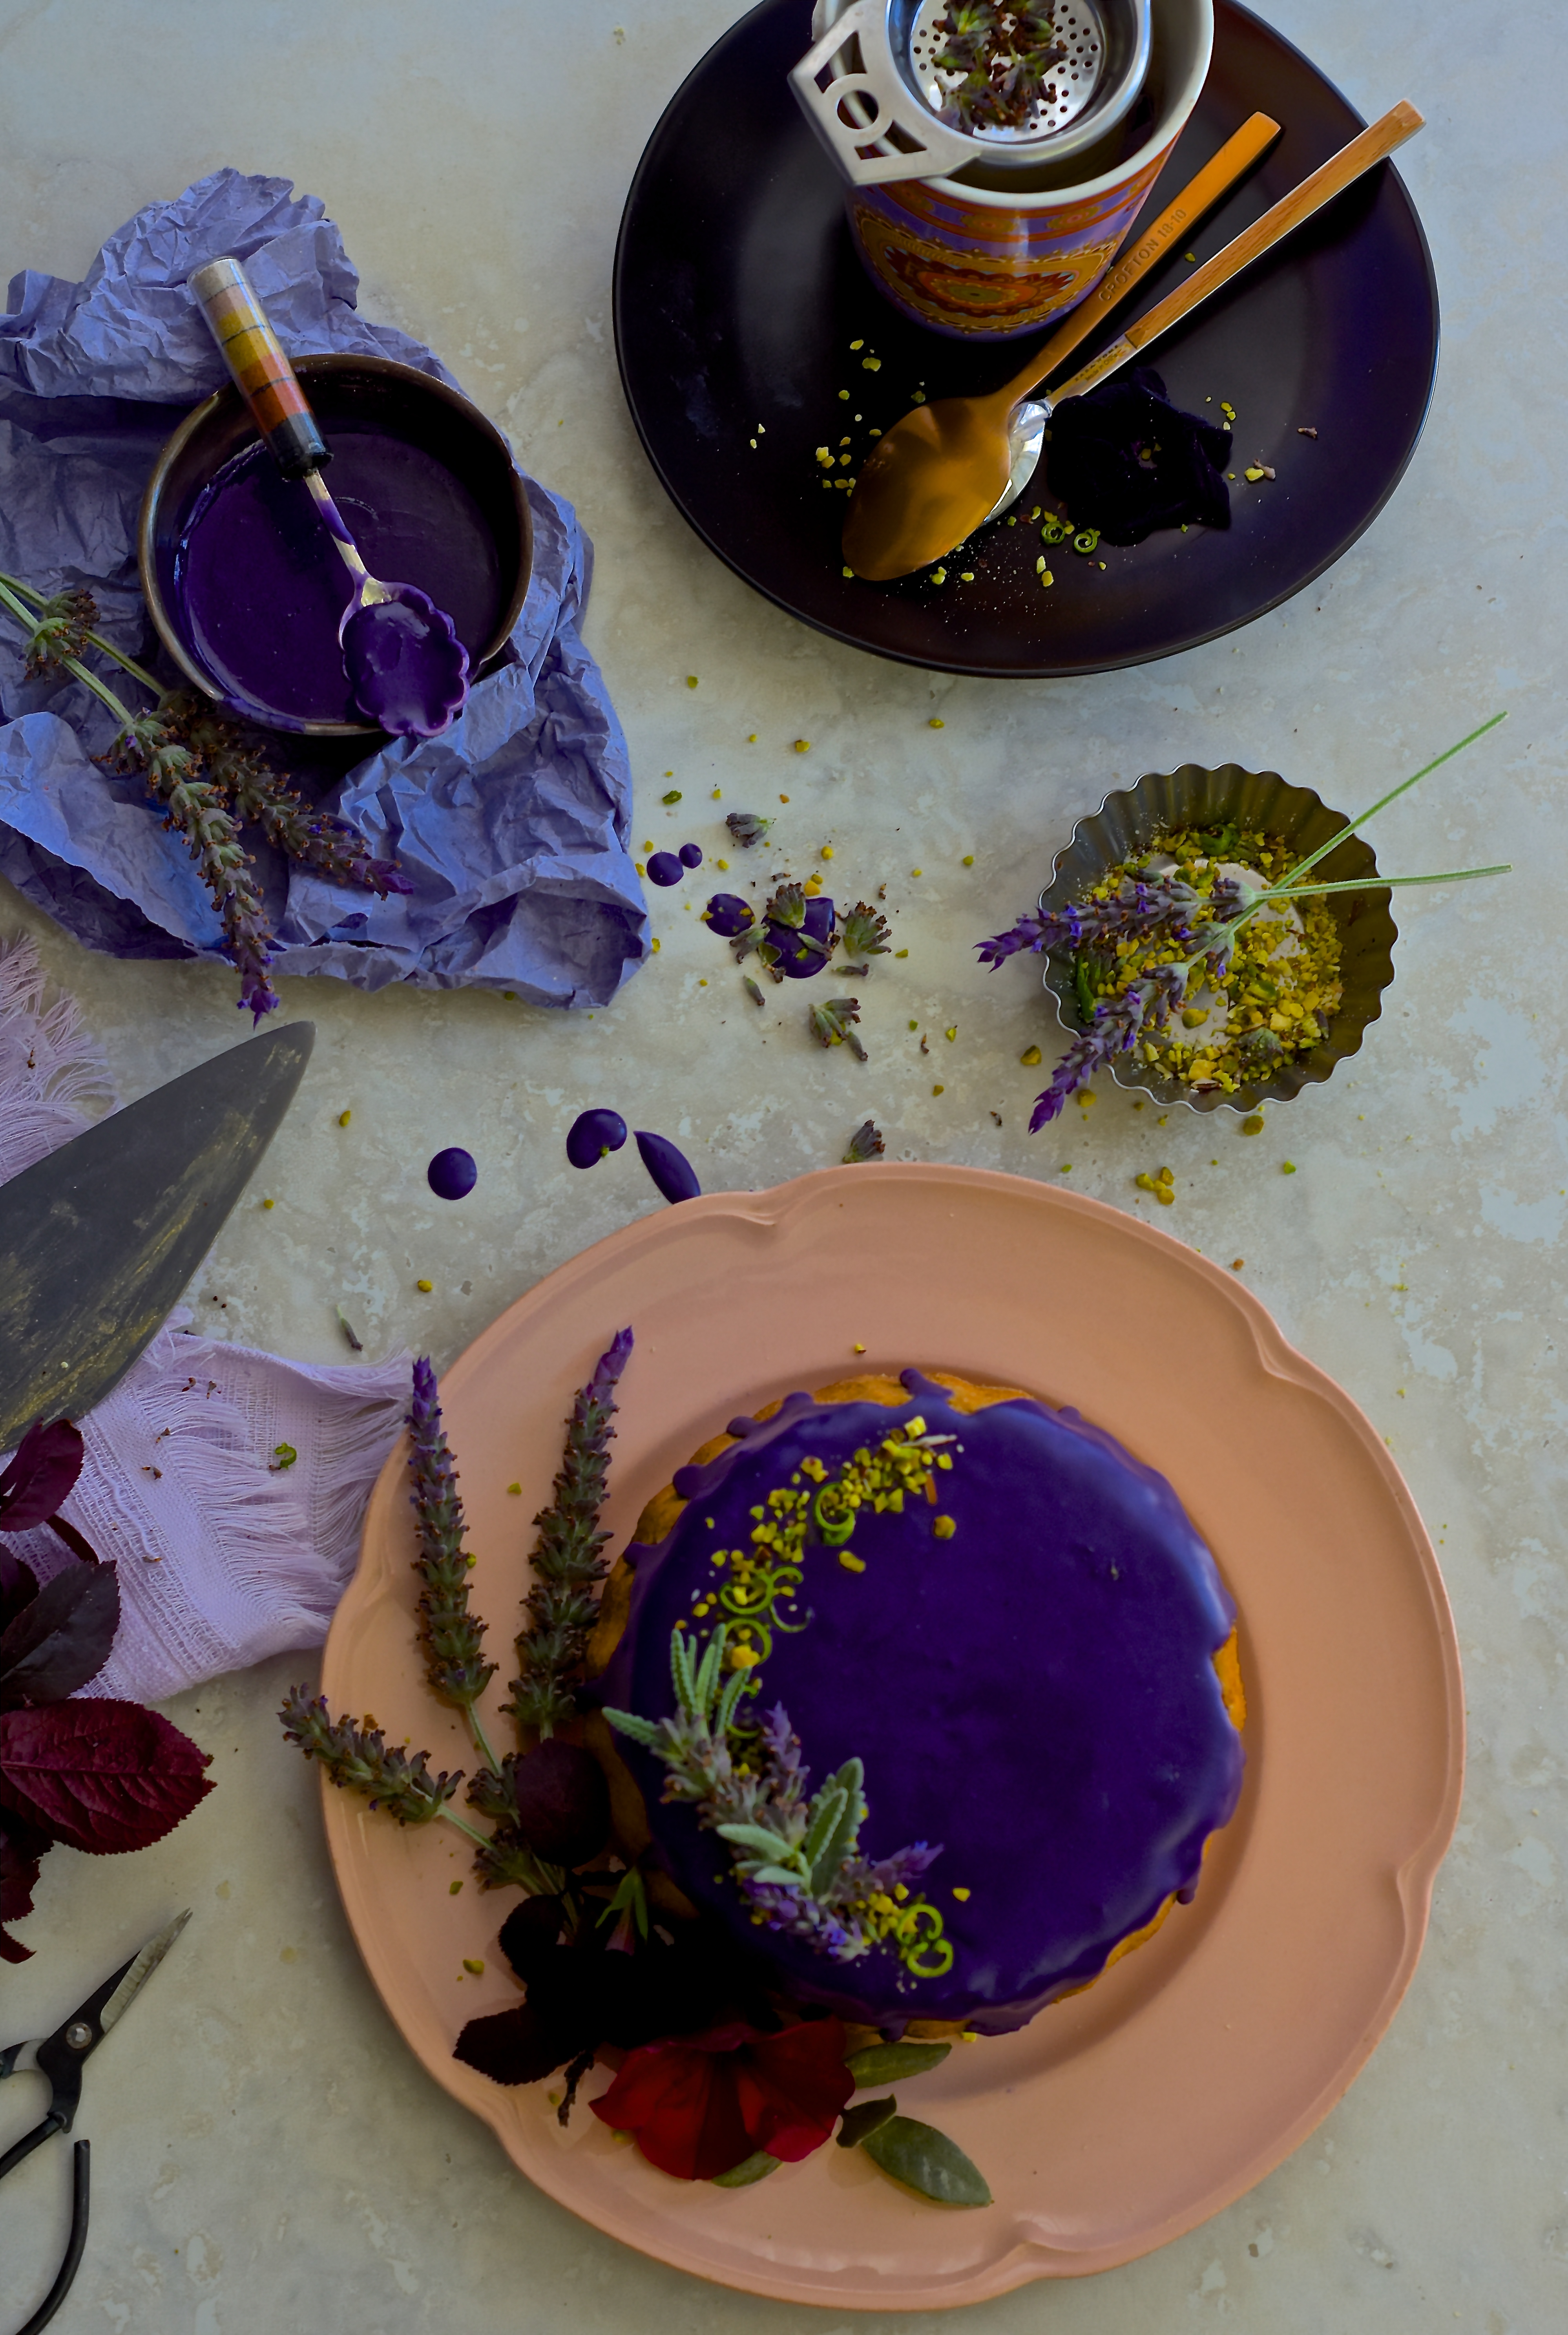 This pistachios lime cake is scrumptious and nutty but the addition of lime zest and lavender glaze teleports it to a next level of indulgence